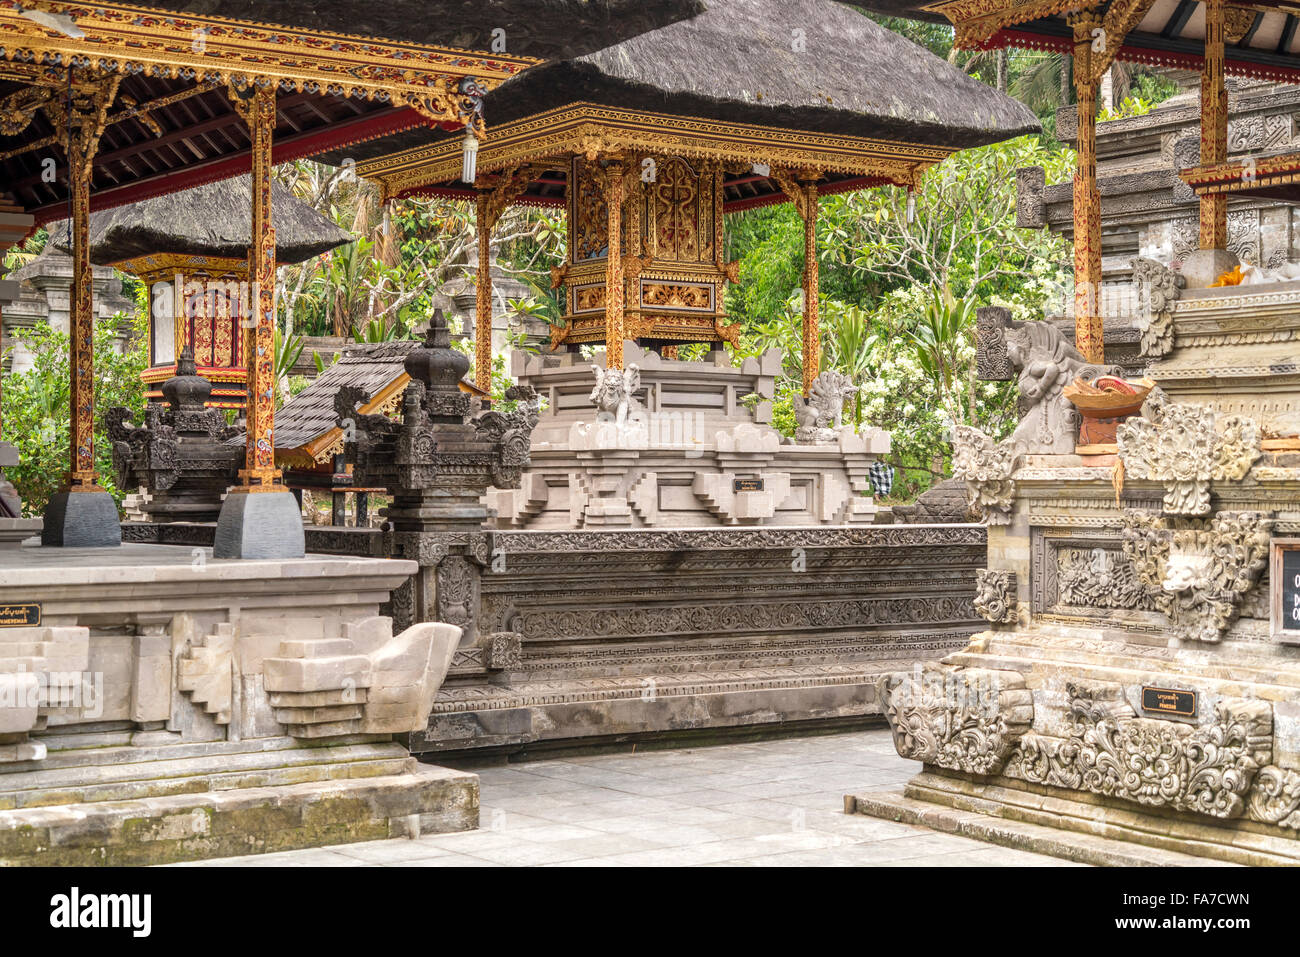 the Hindu water temple Tirta Empul near Ubud, Bali, Indonesia - Stock Image